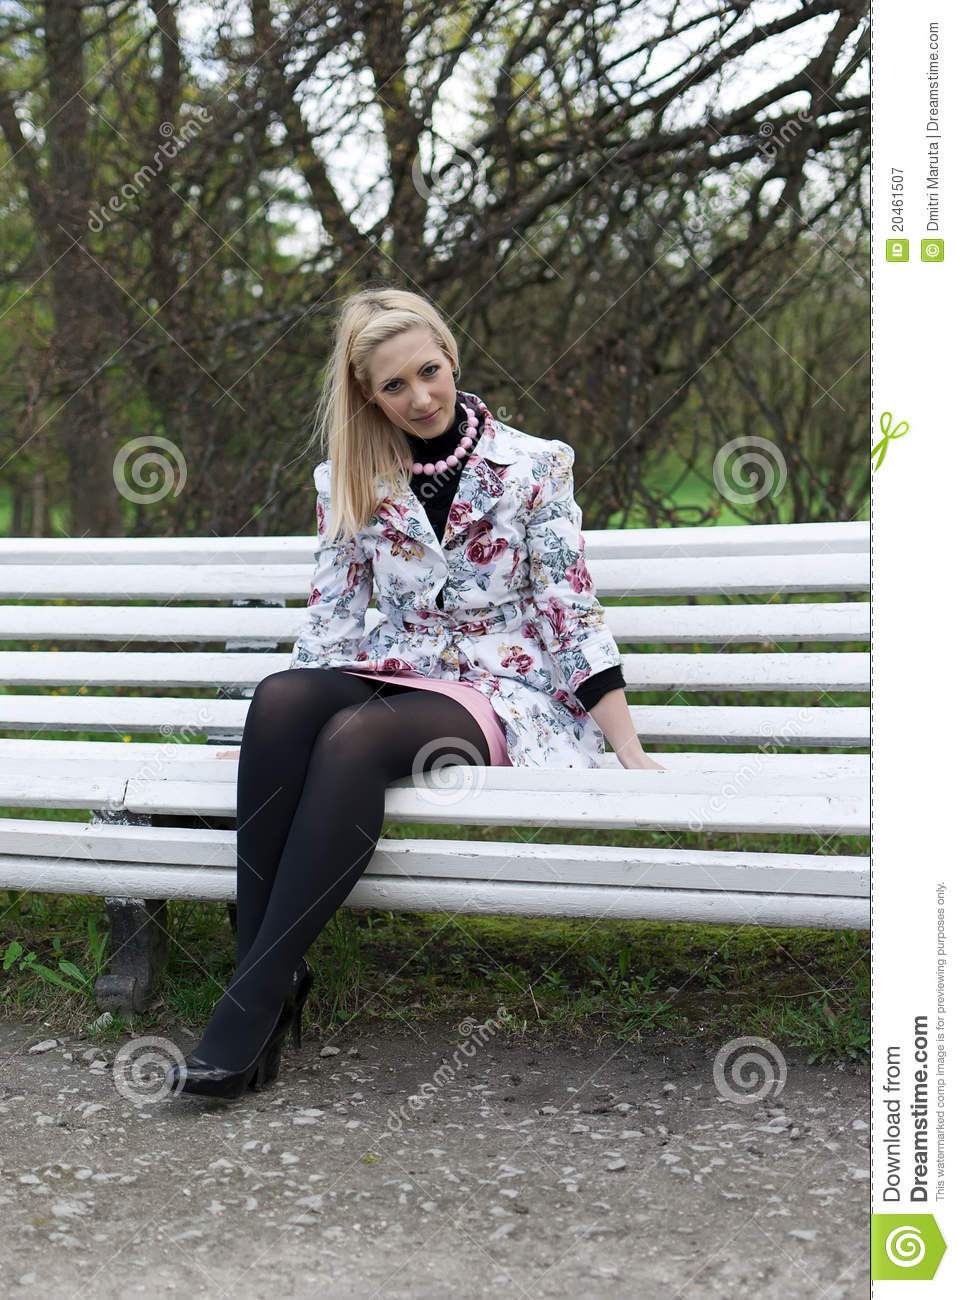 Blonde Girl Sitting On A Park Bench Stock Image - Image